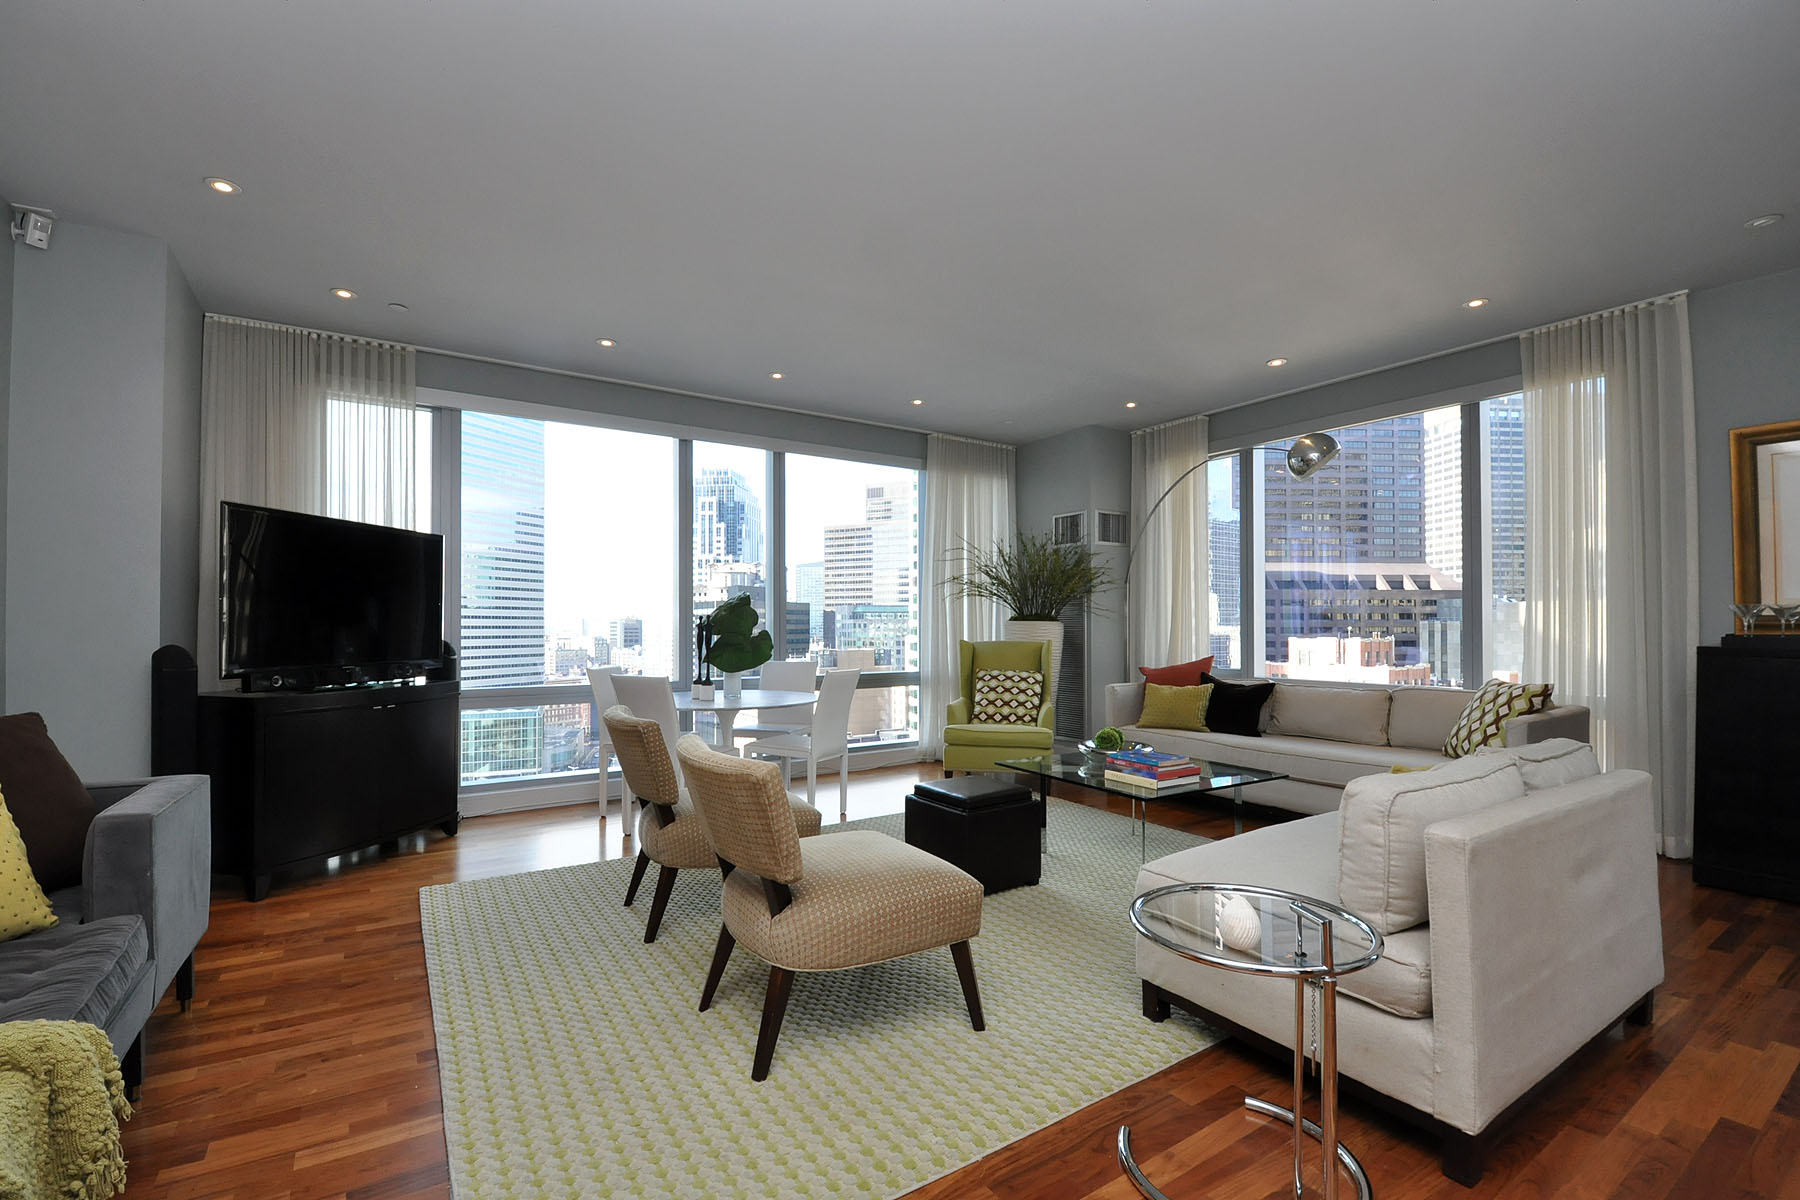 Condominium for Sale at Waterfront High Rise Condominium 500 Atlantic Avenue Unit 18AA Waterfront, Boston, Massachusetts 02210 United States